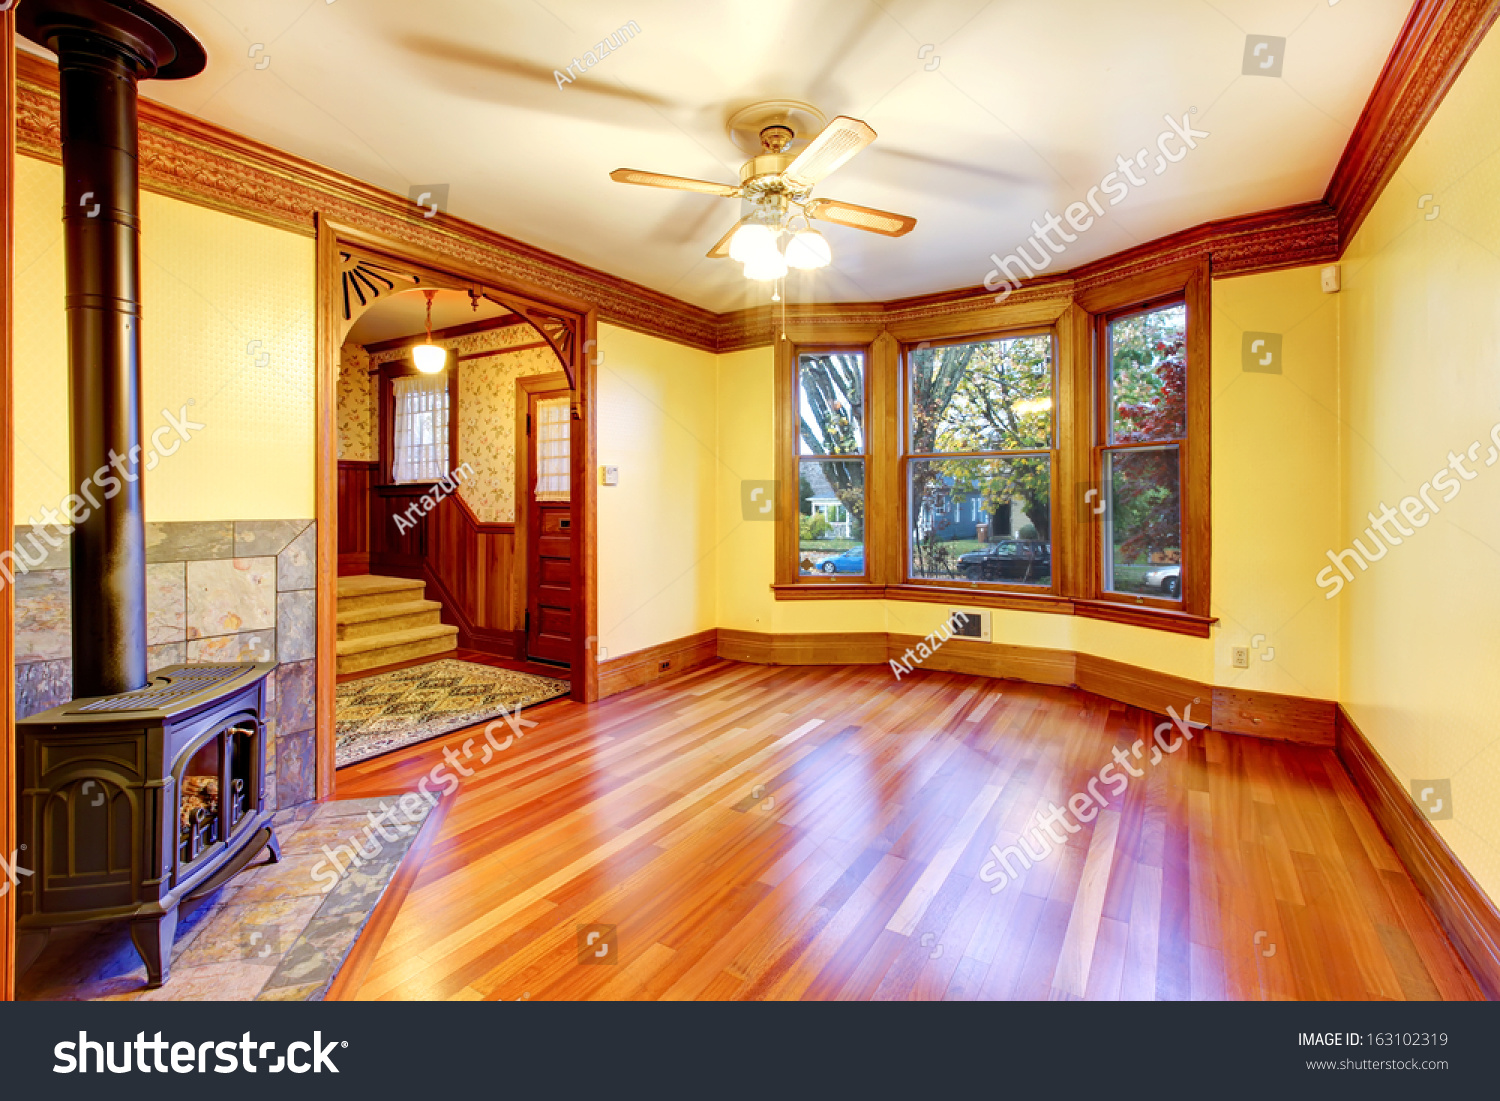 Fantastic American Craftsman Style Home - stock-photo-empty-beautiful-living-room-with-wood-burning-stove-old-american-craftsman-style-home-with-lots-of-163102319  Pic_2710064.jpg